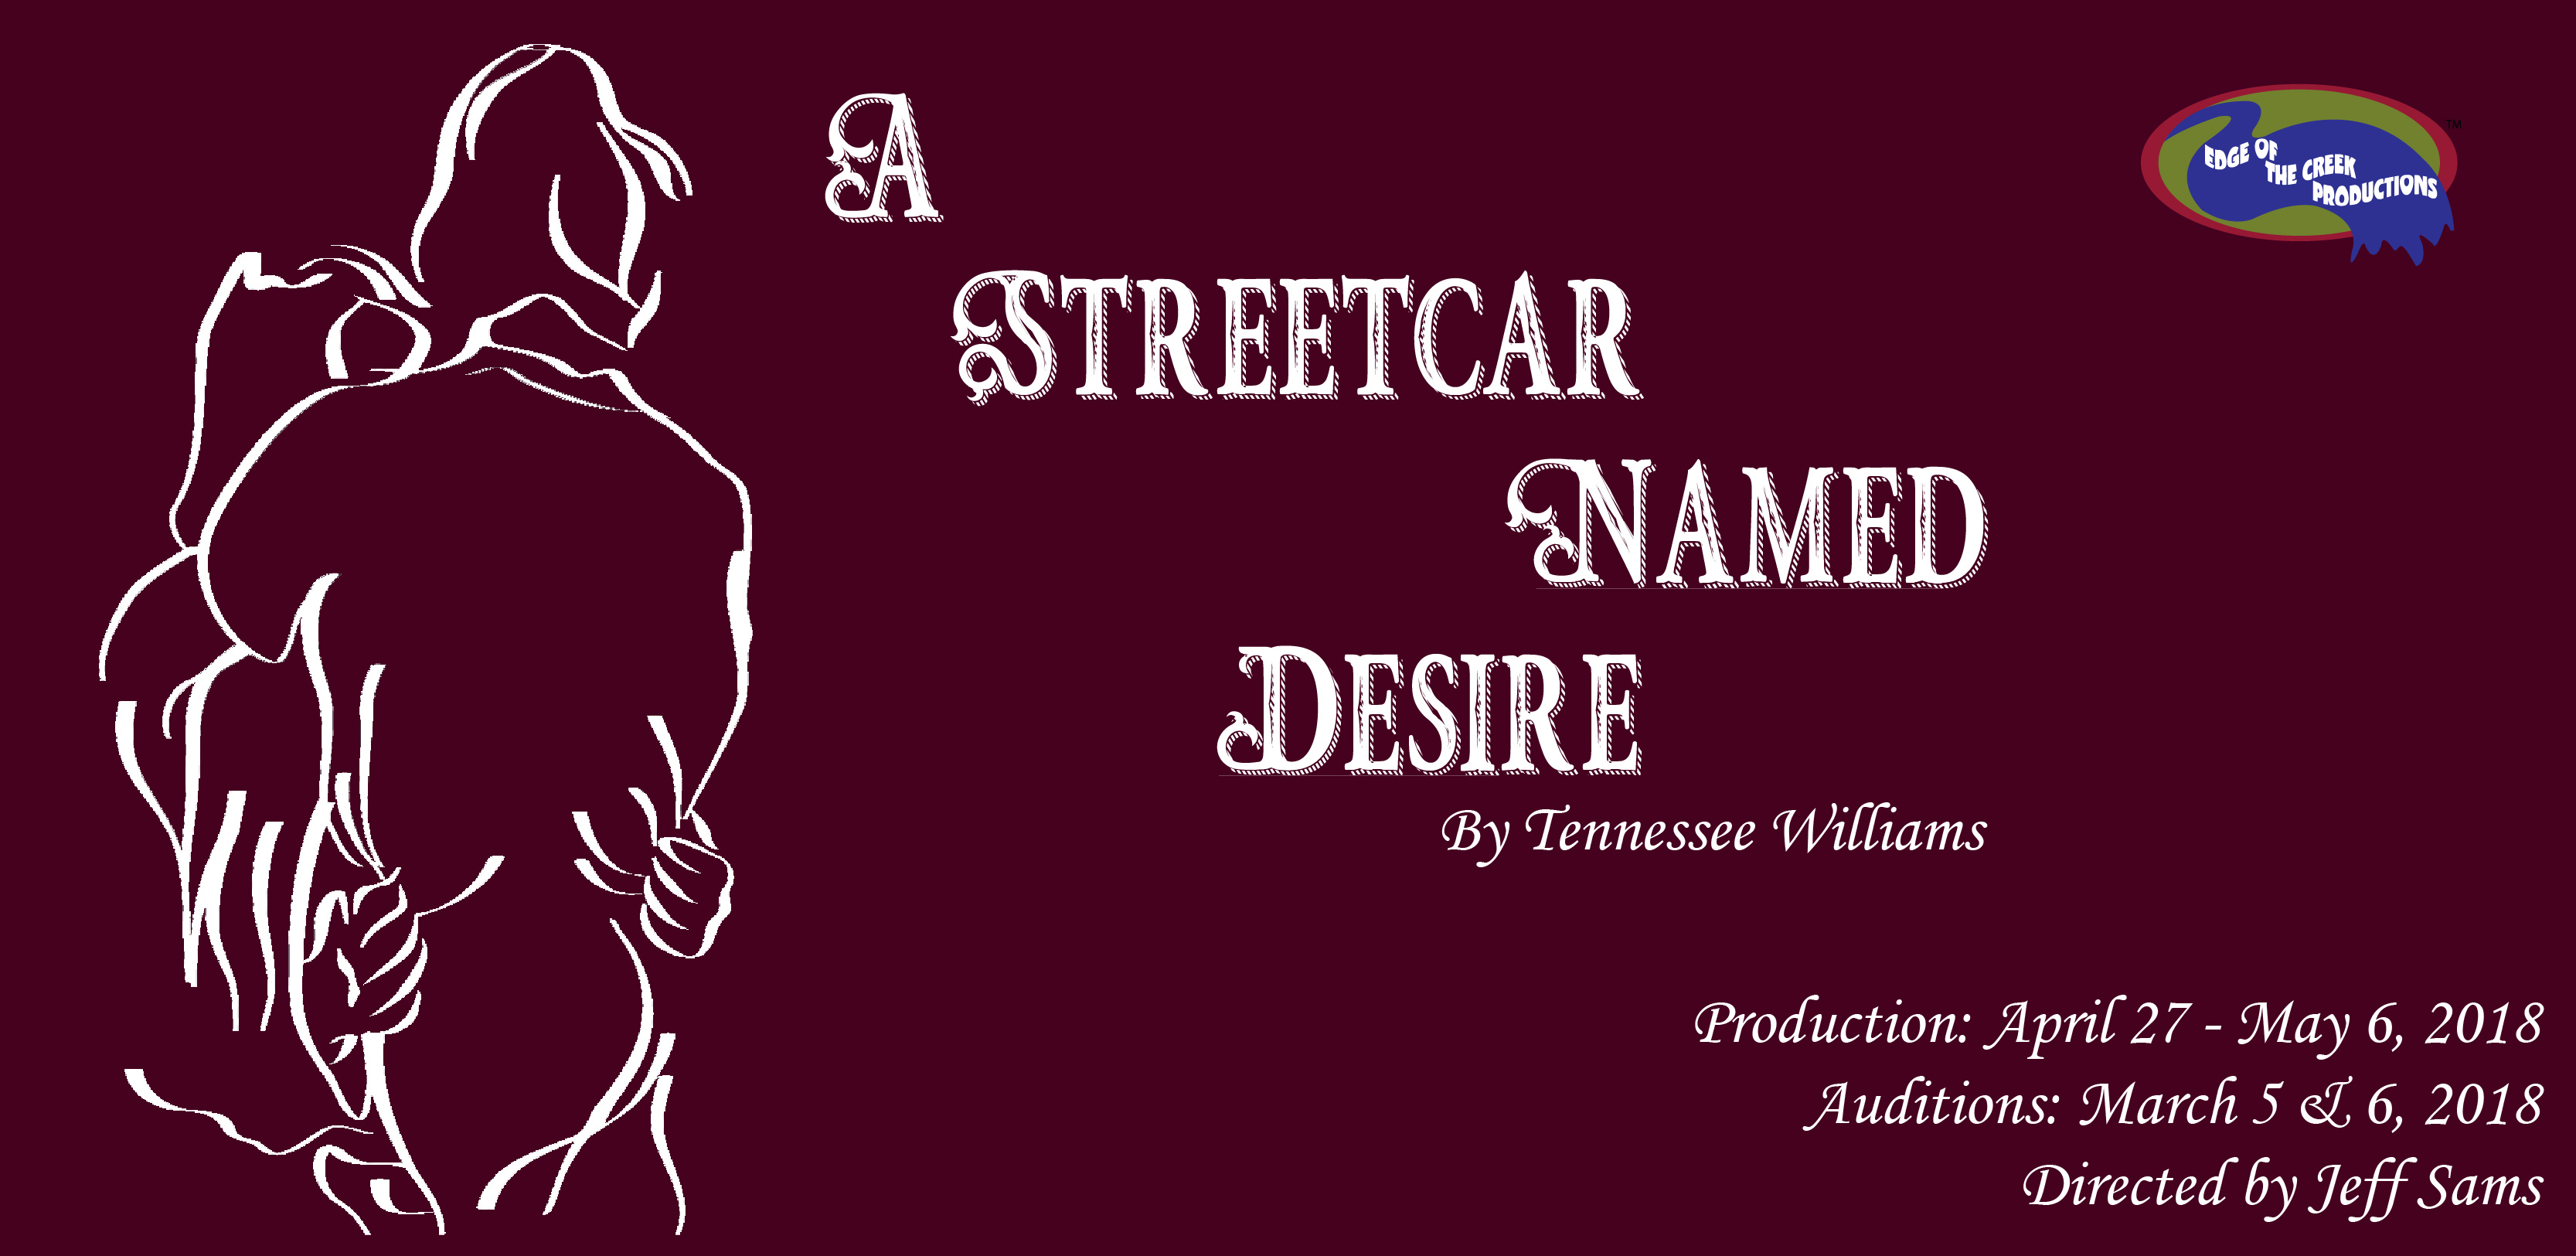 a streetcar named desire study guide A streetcar named desire is a tragedy blanche dubois—the protagonist of tennessee williams' tragic tale of tragic confrontation between fantasy and reality—is, well, tragic.